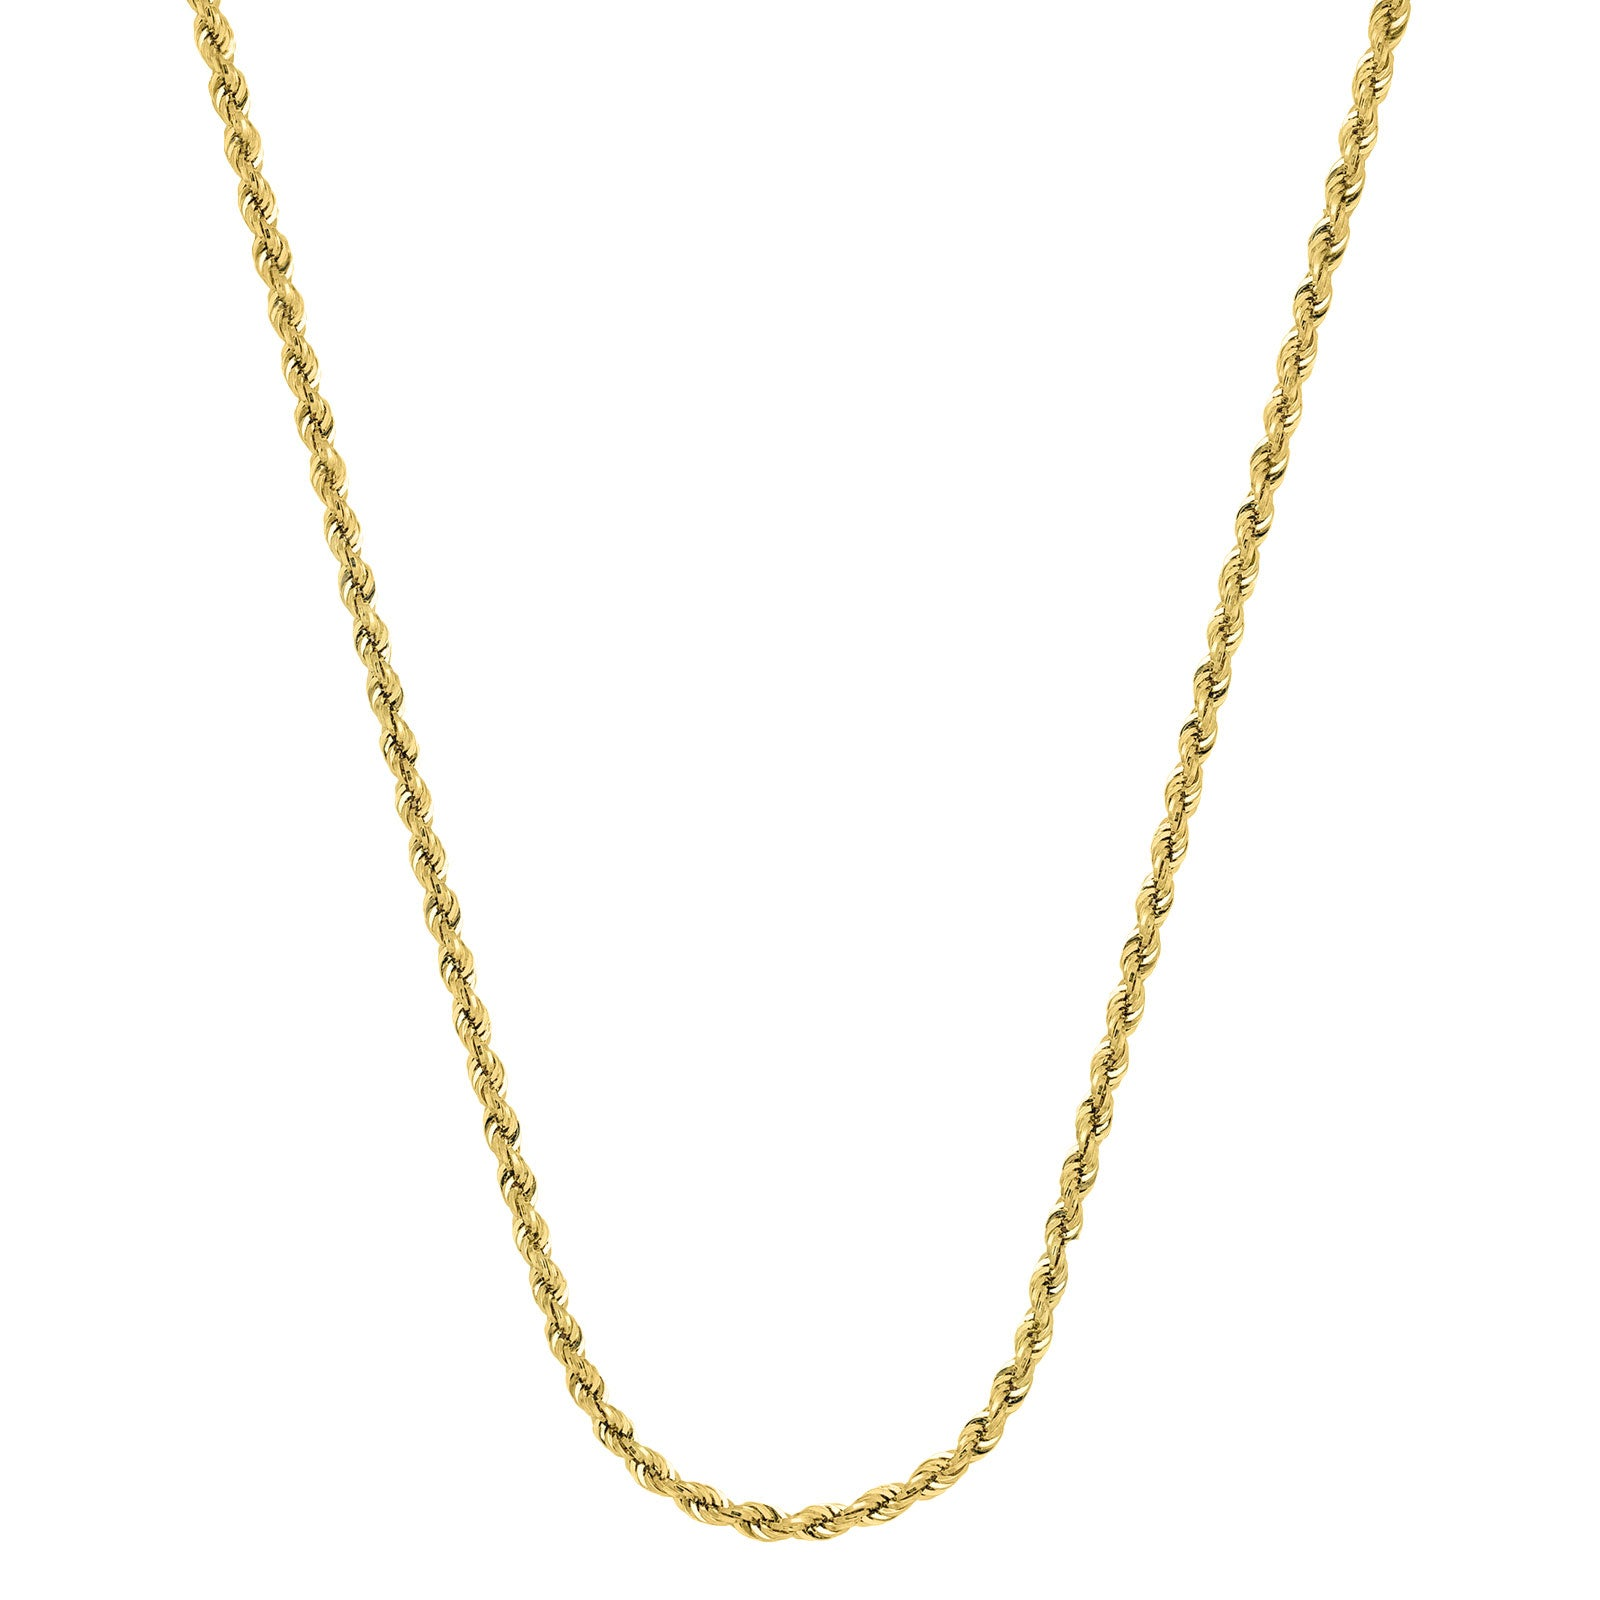 Hollow Rope Chain Necklace, 20 Inches, 14K Yellow Gold